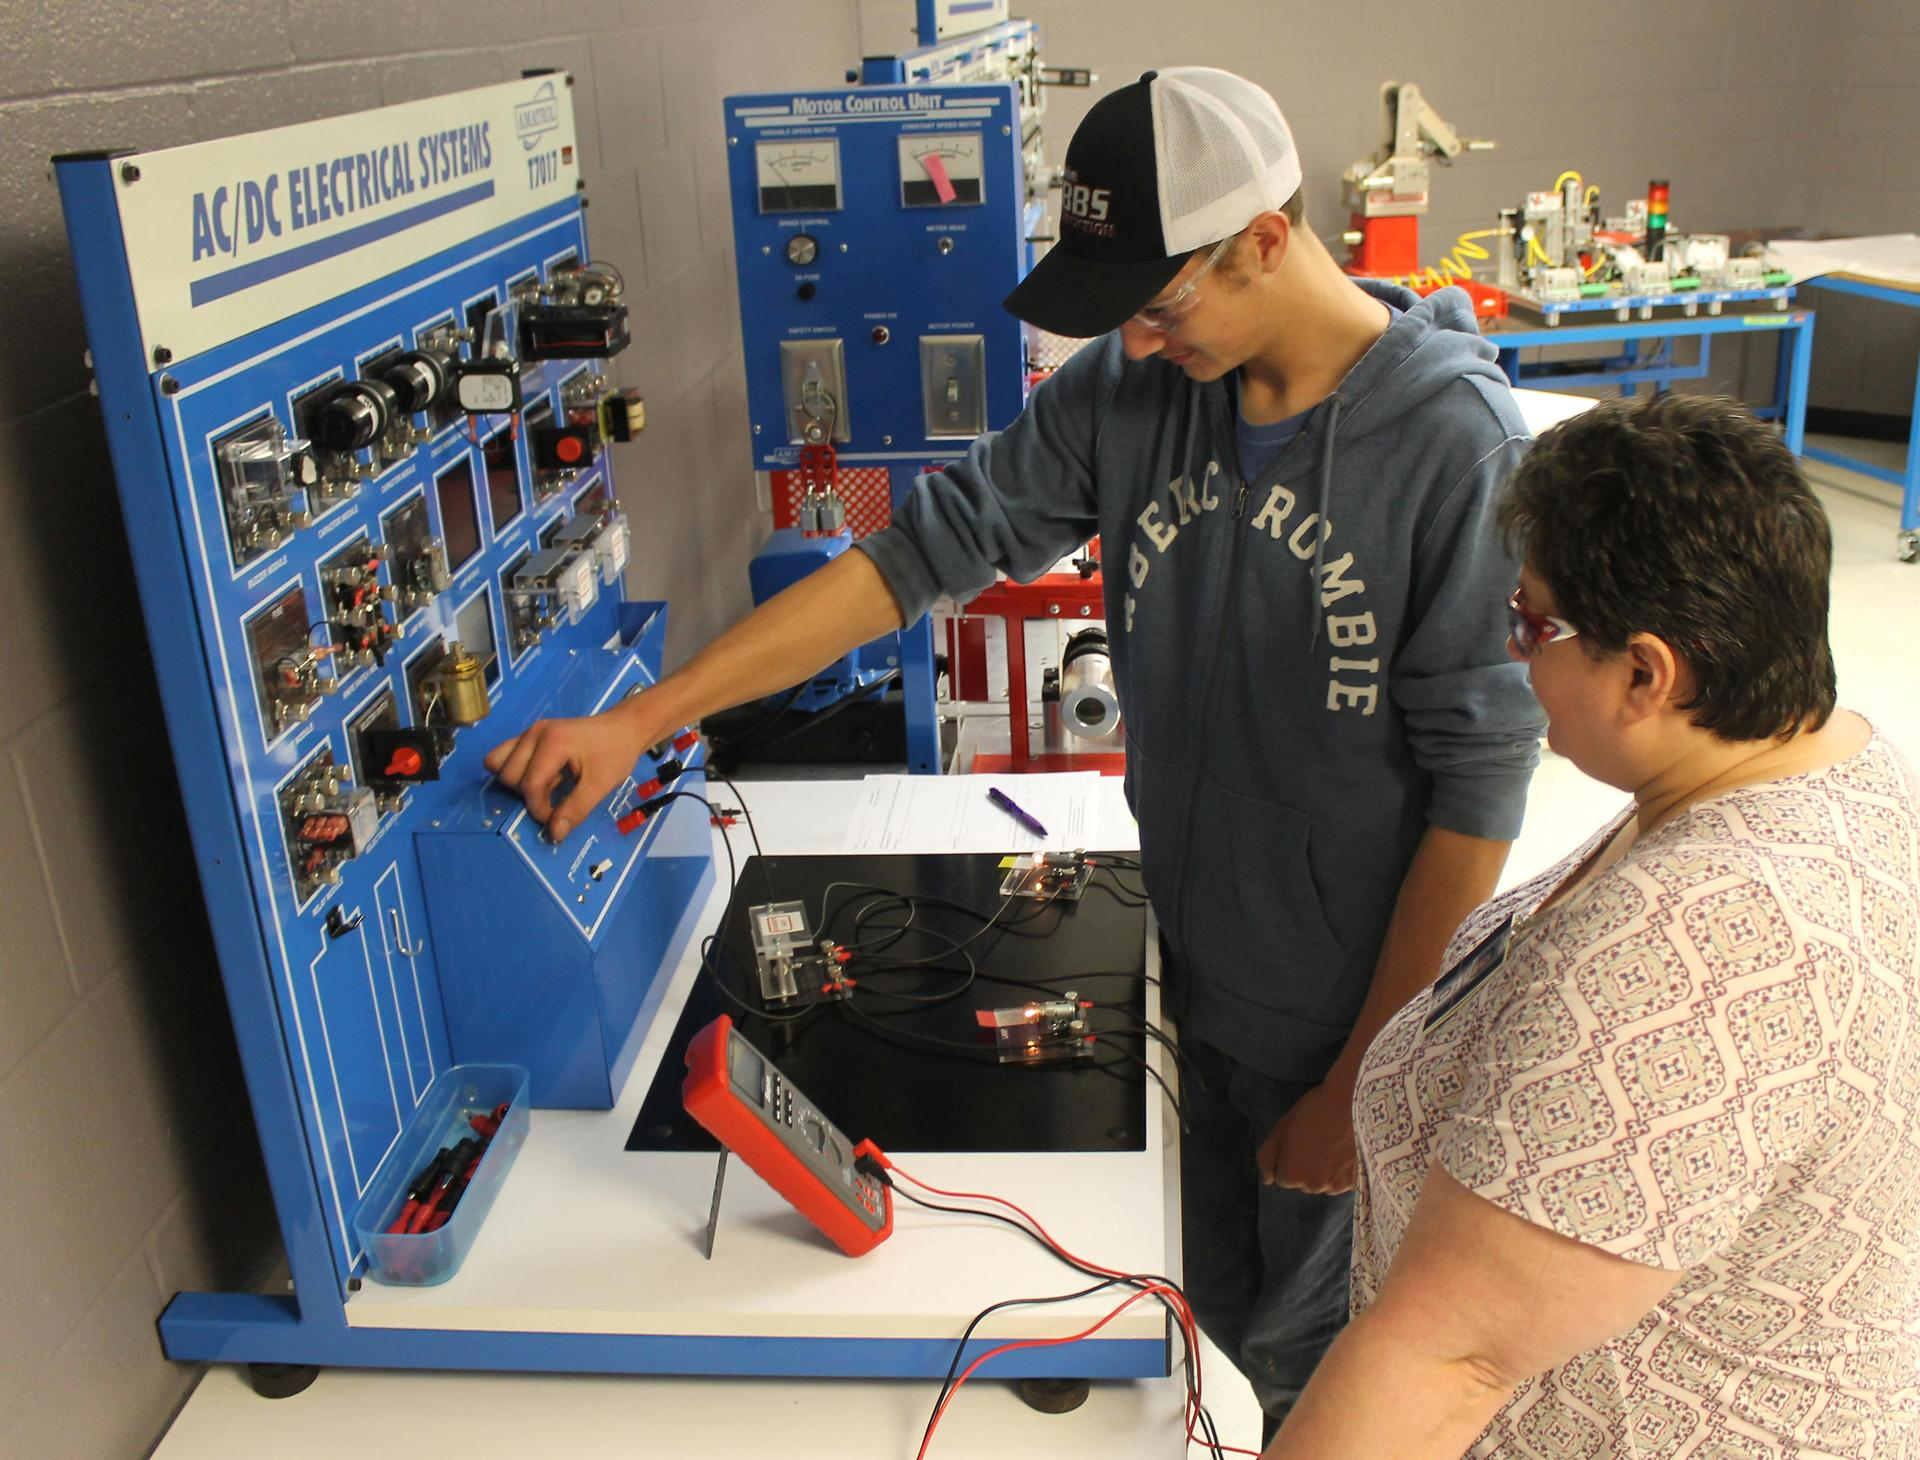 Cheatham County Central High School offers a Mechatronics course.